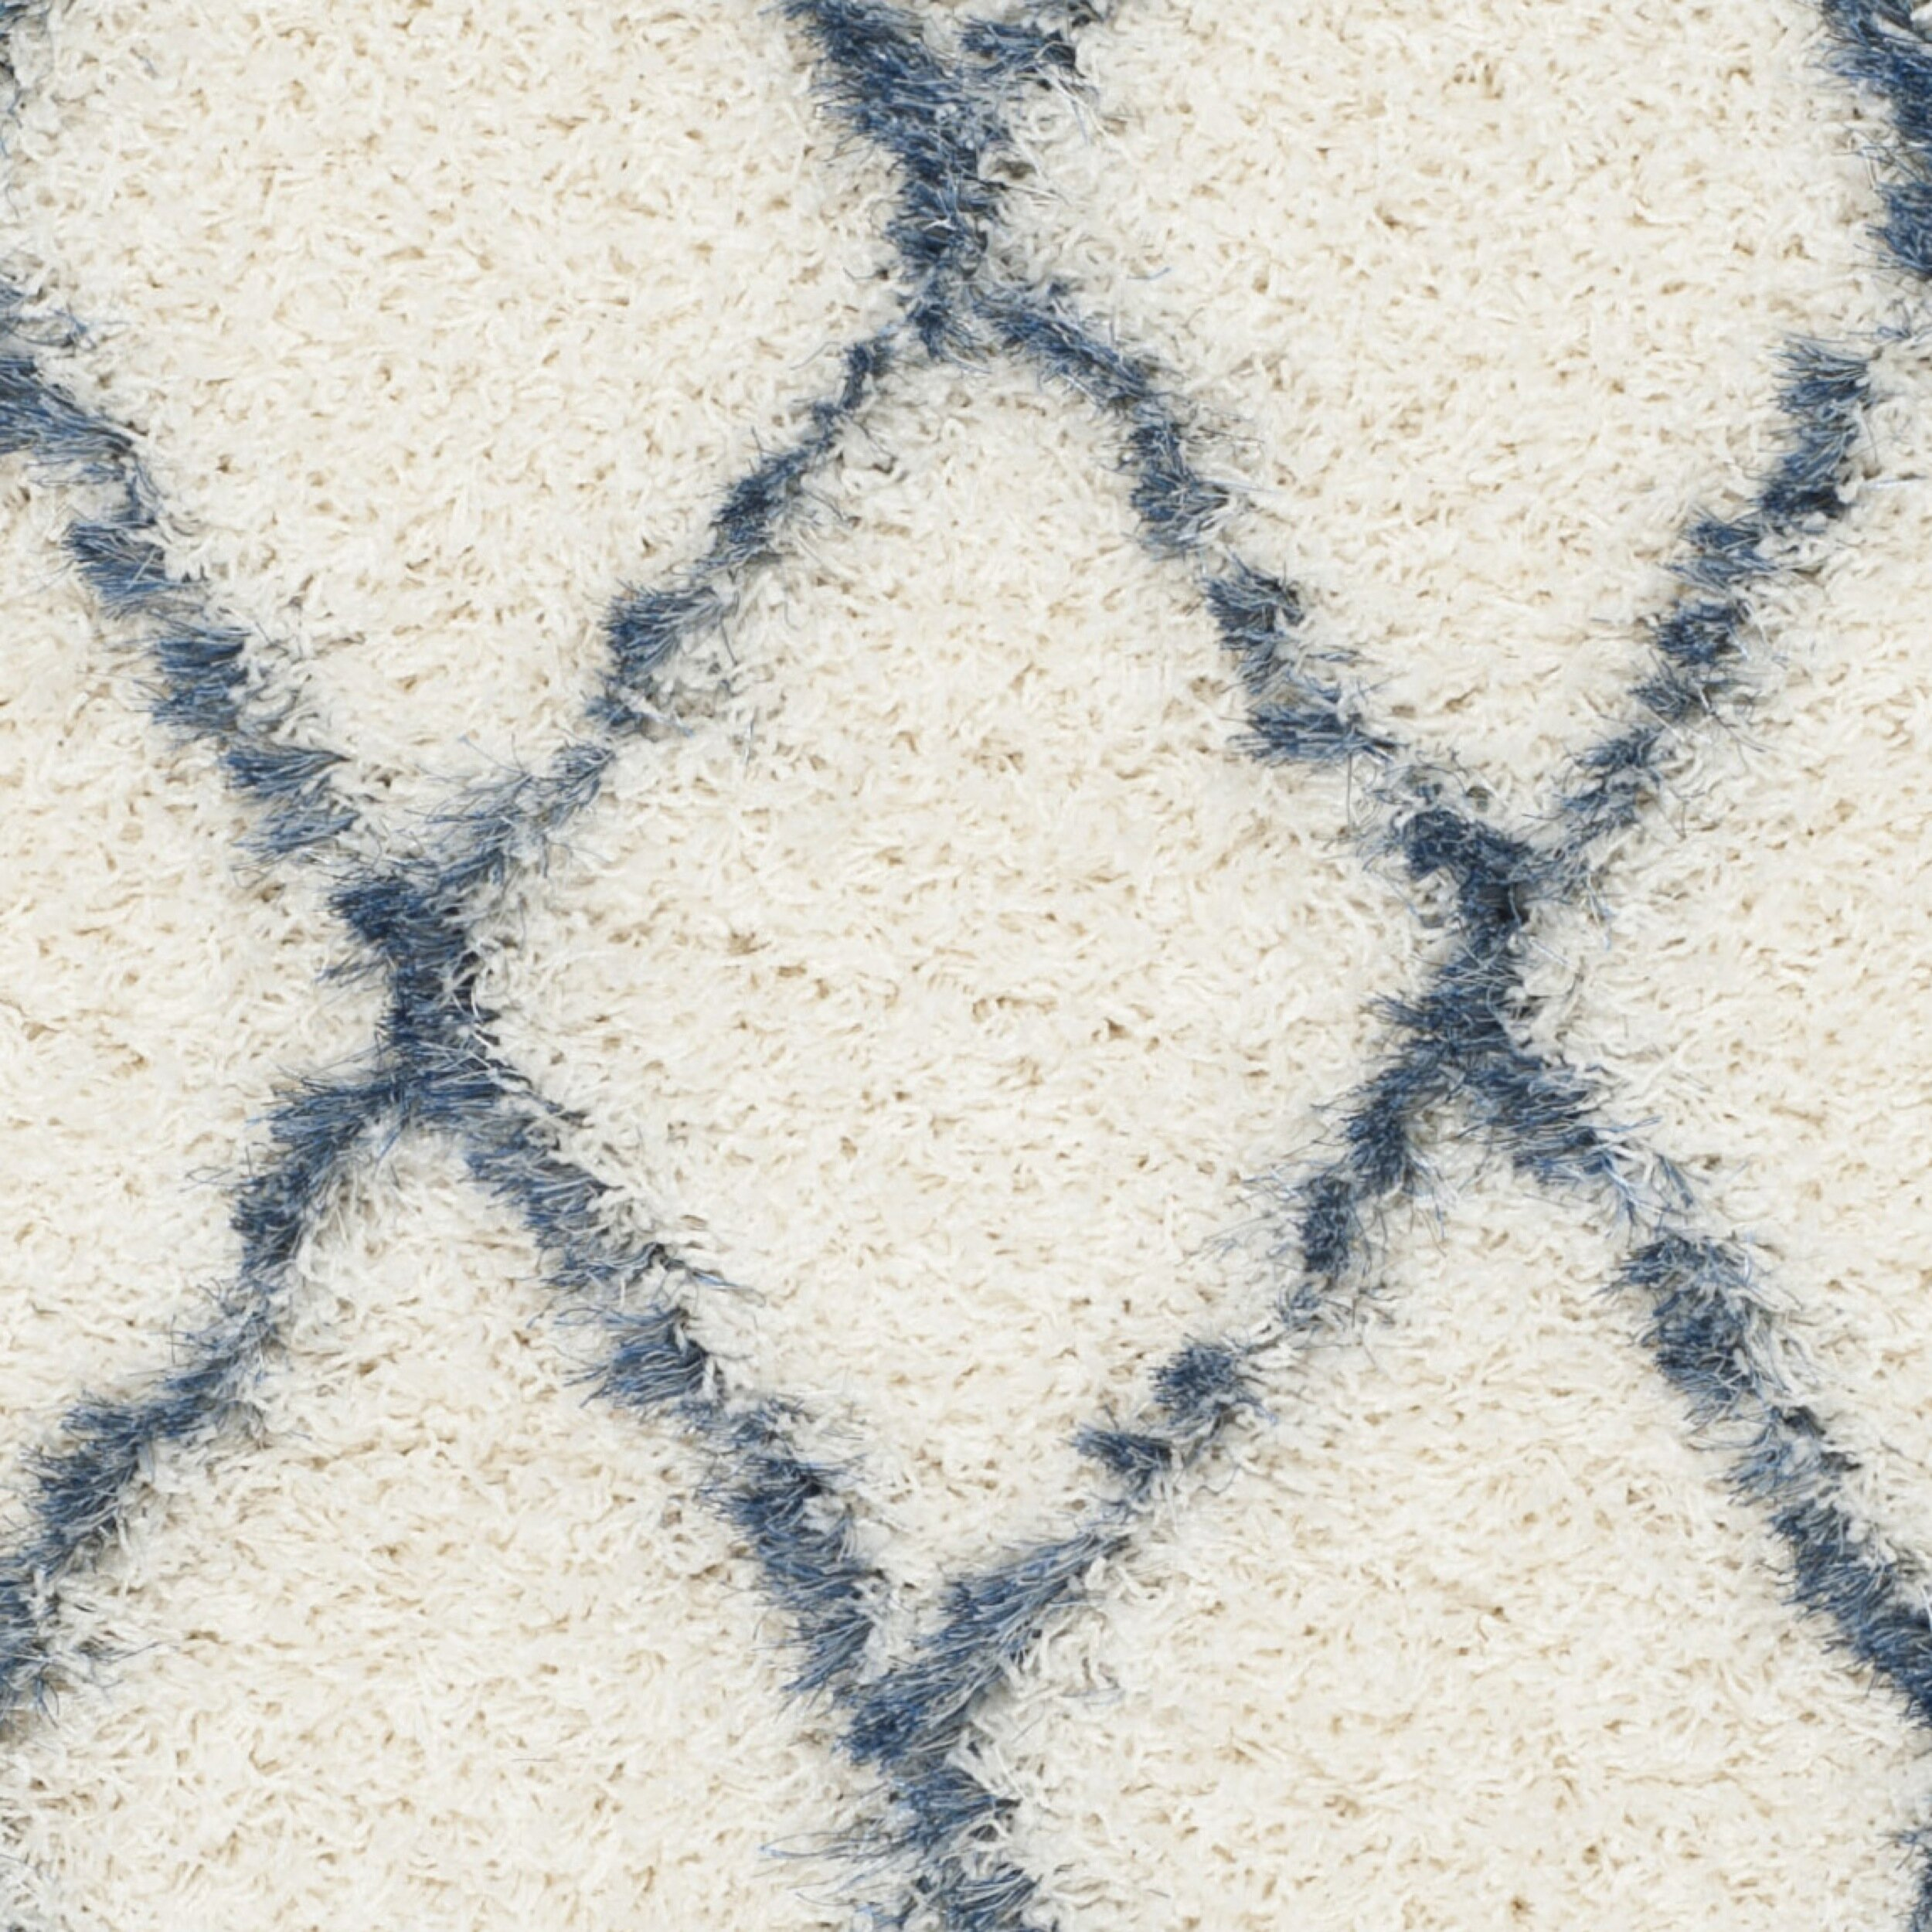 Safavieh Moroccan Blue And Black Area Rug: Moroccan Shag Ivory & Blue Geometric Contemporary Area Rug